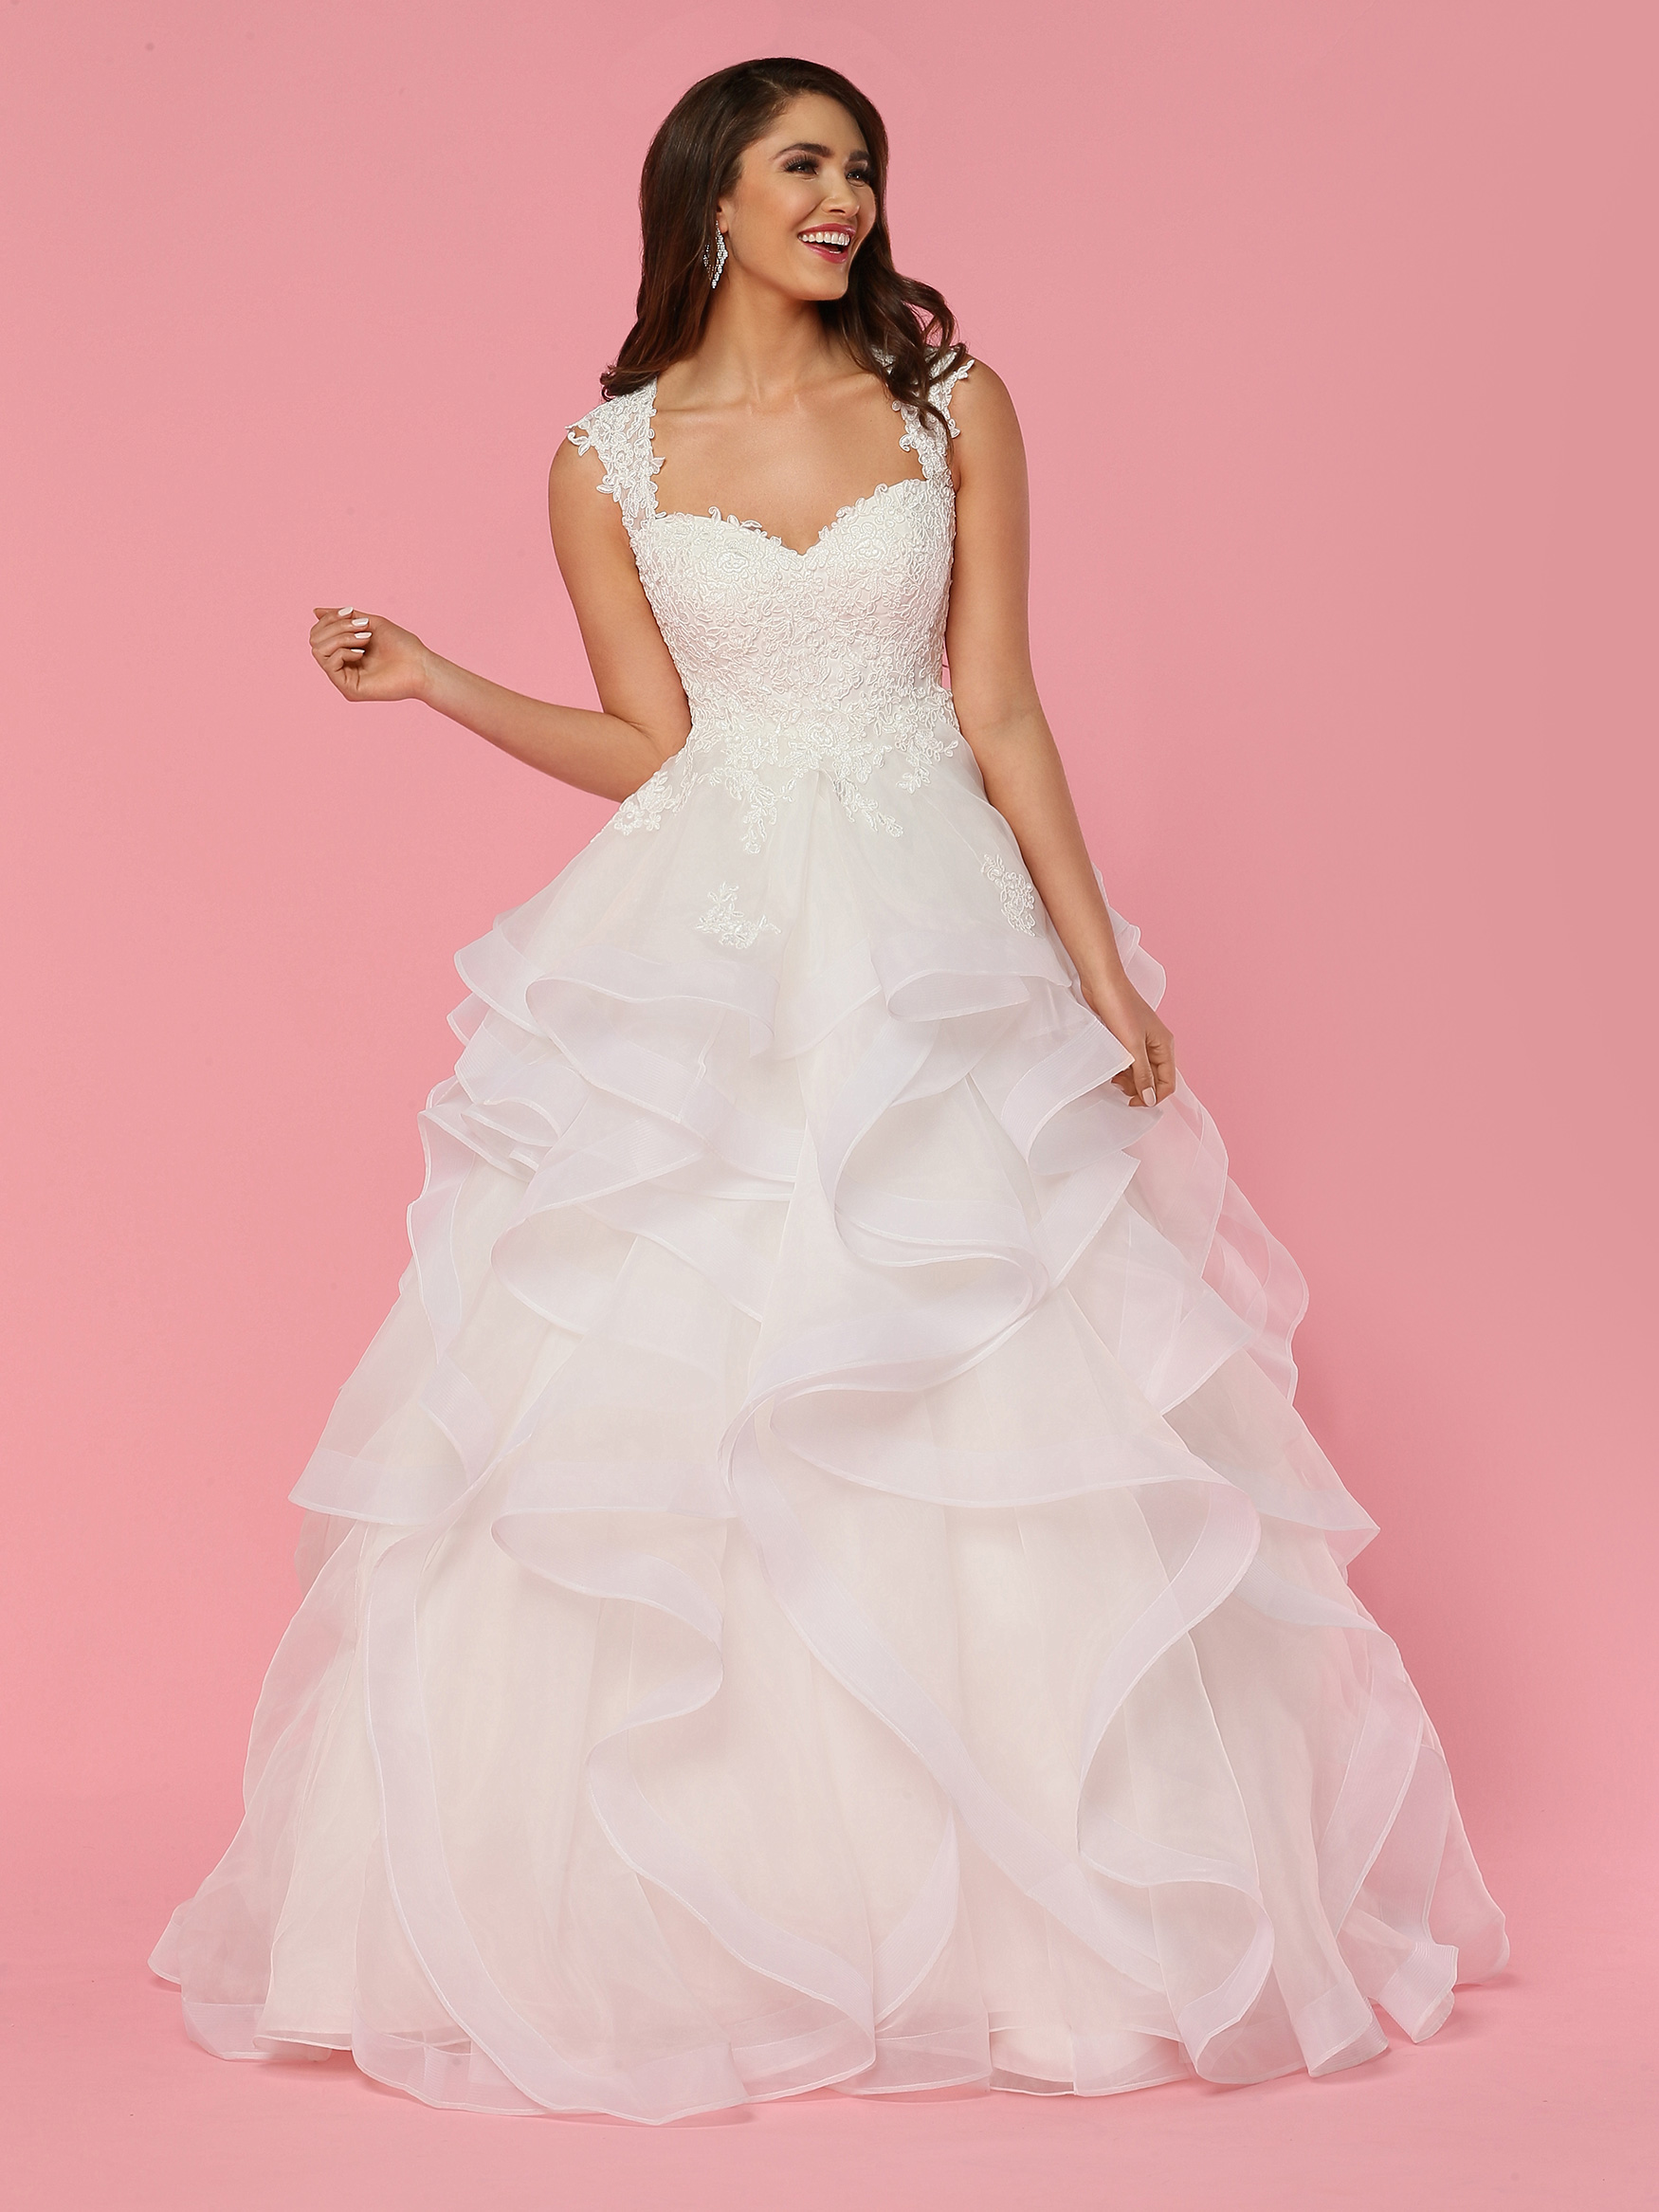 DaVinci Wedding Dresses | DaVinci Bridal